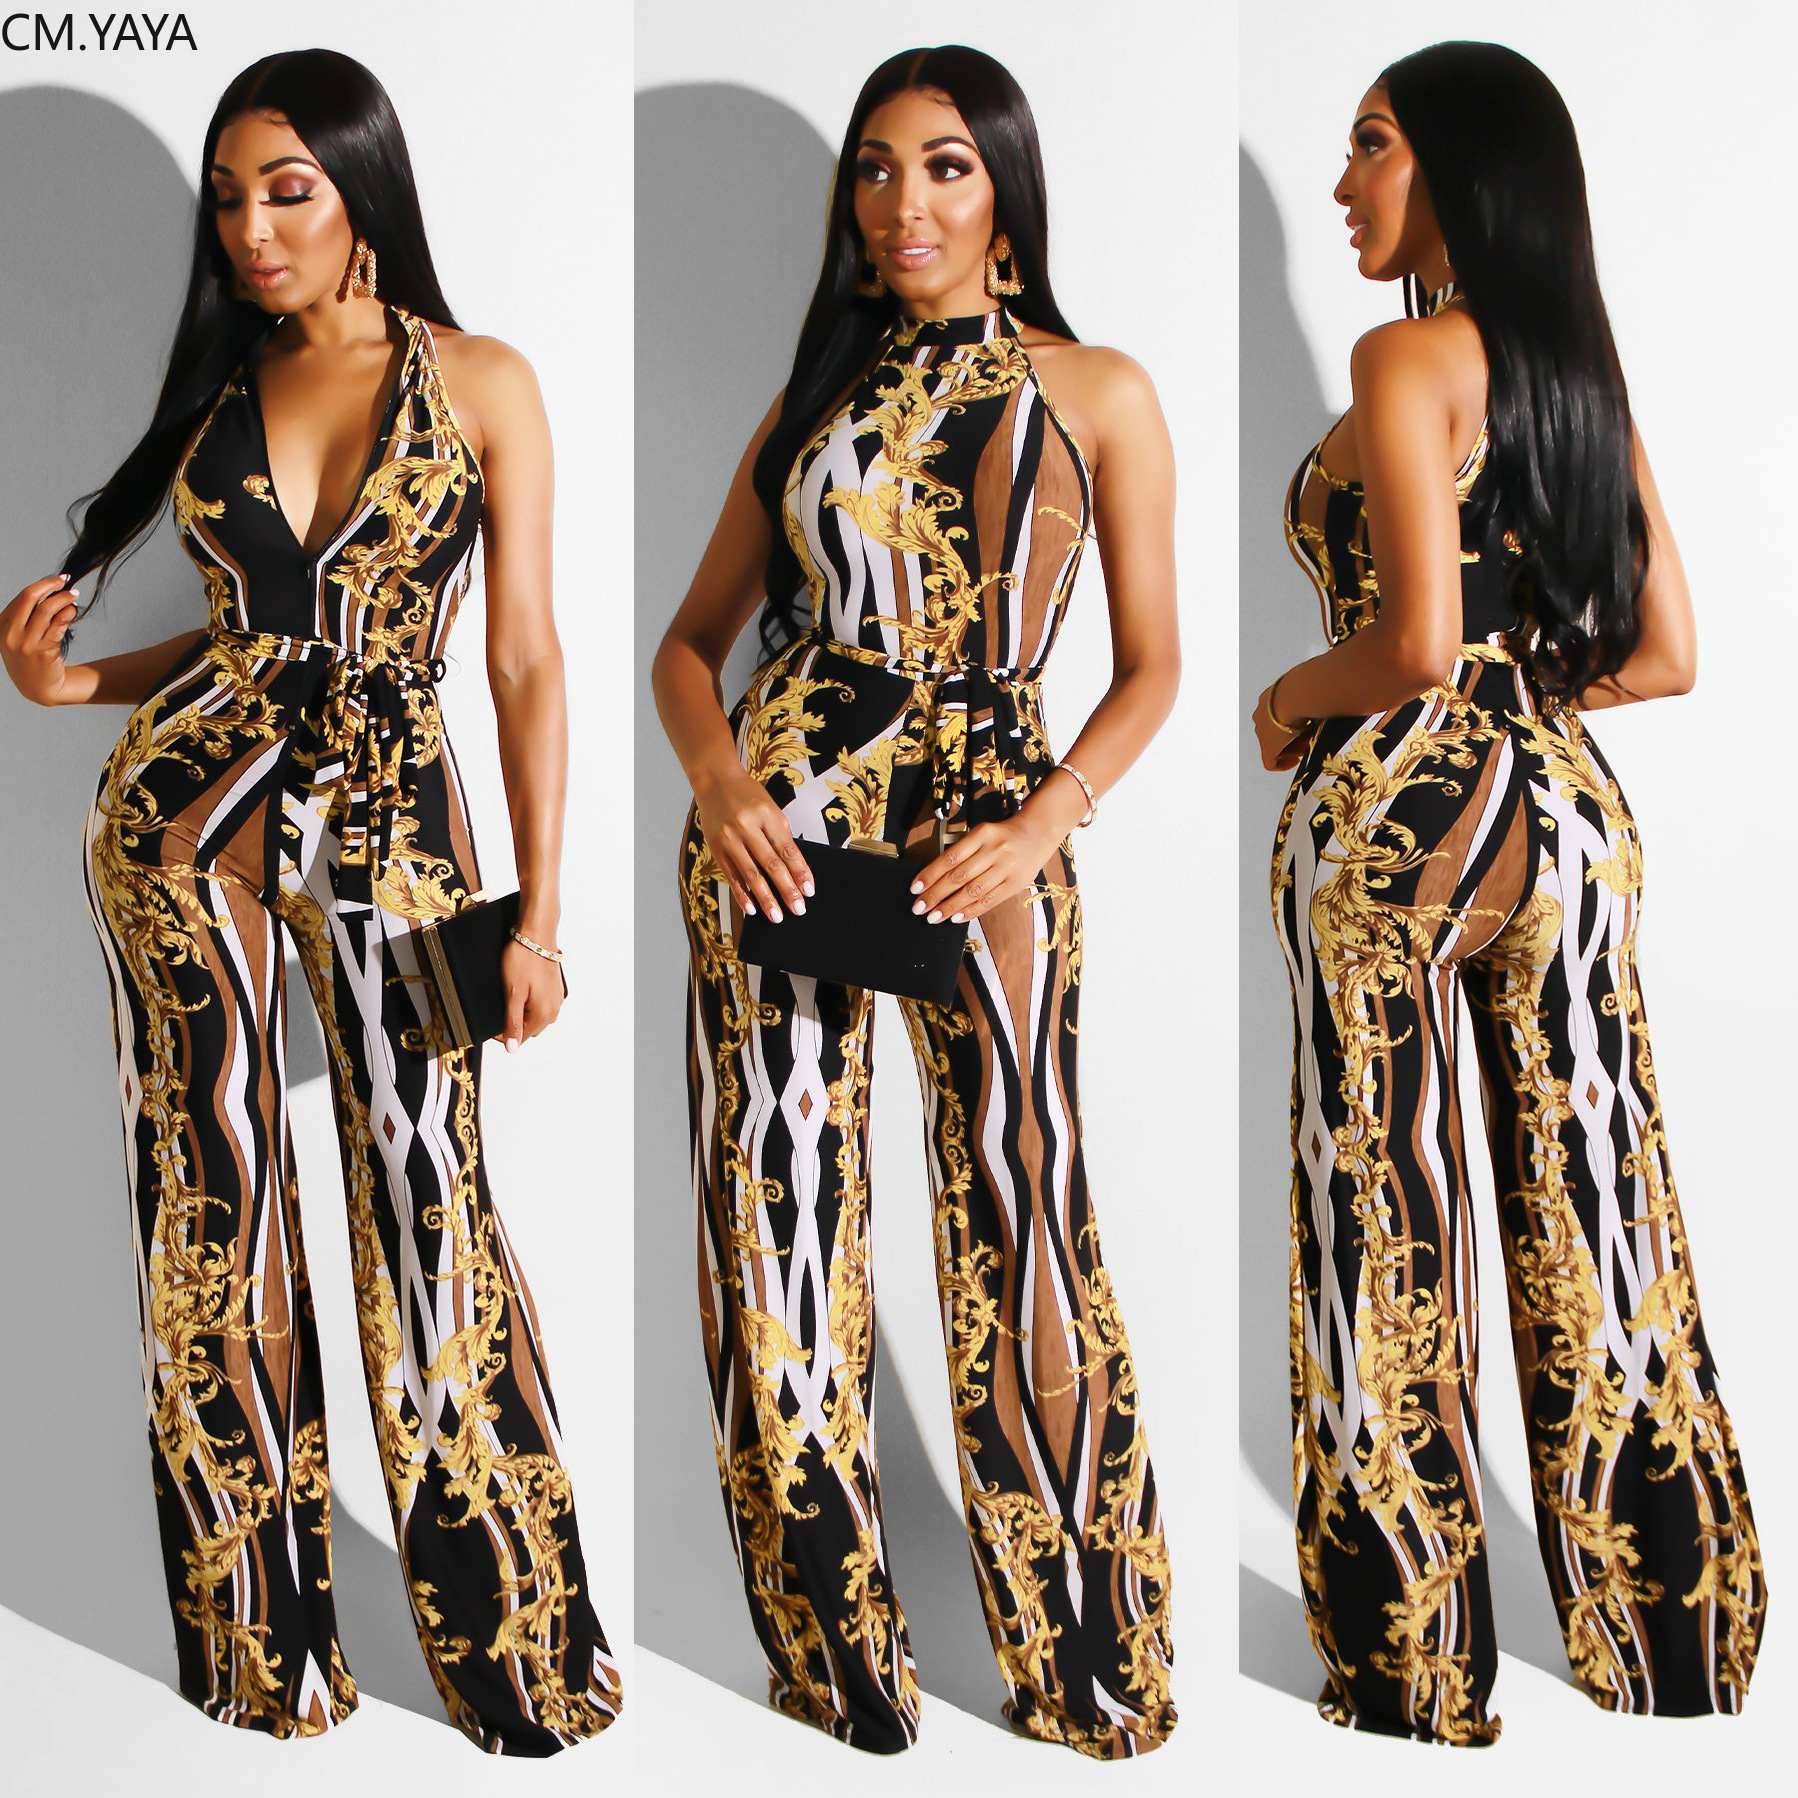 2019 frauen sommer kette vintage print ärmellose hohe taille overall nacht club party strampler strand streetwear overall GLR6216